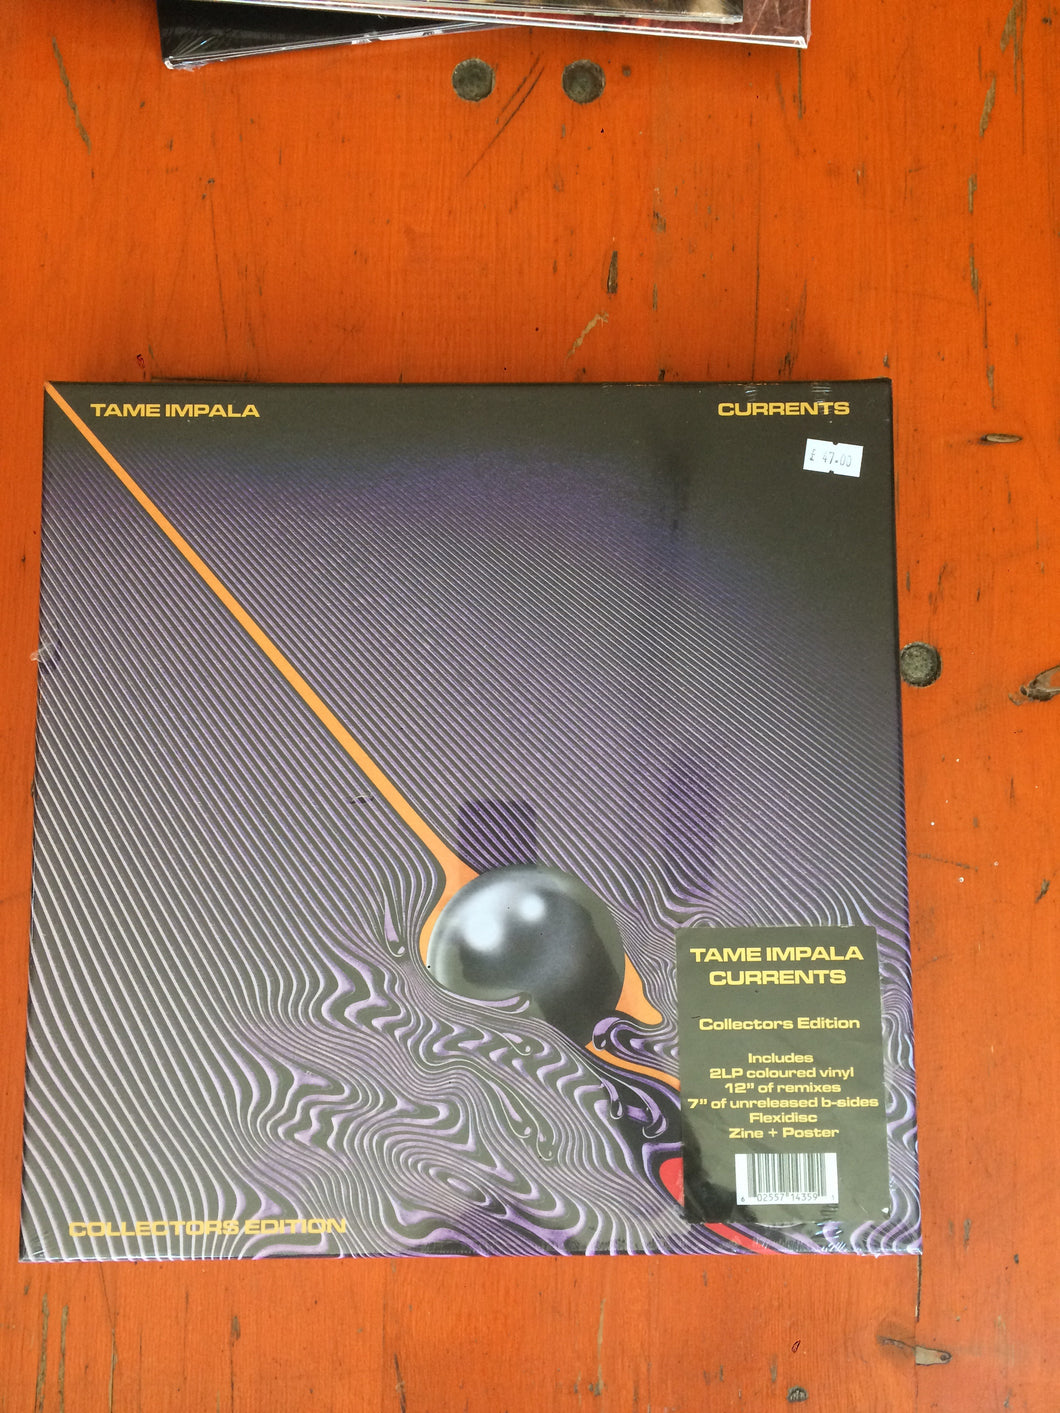 Tame Impala - Currents (Collectors Edition)